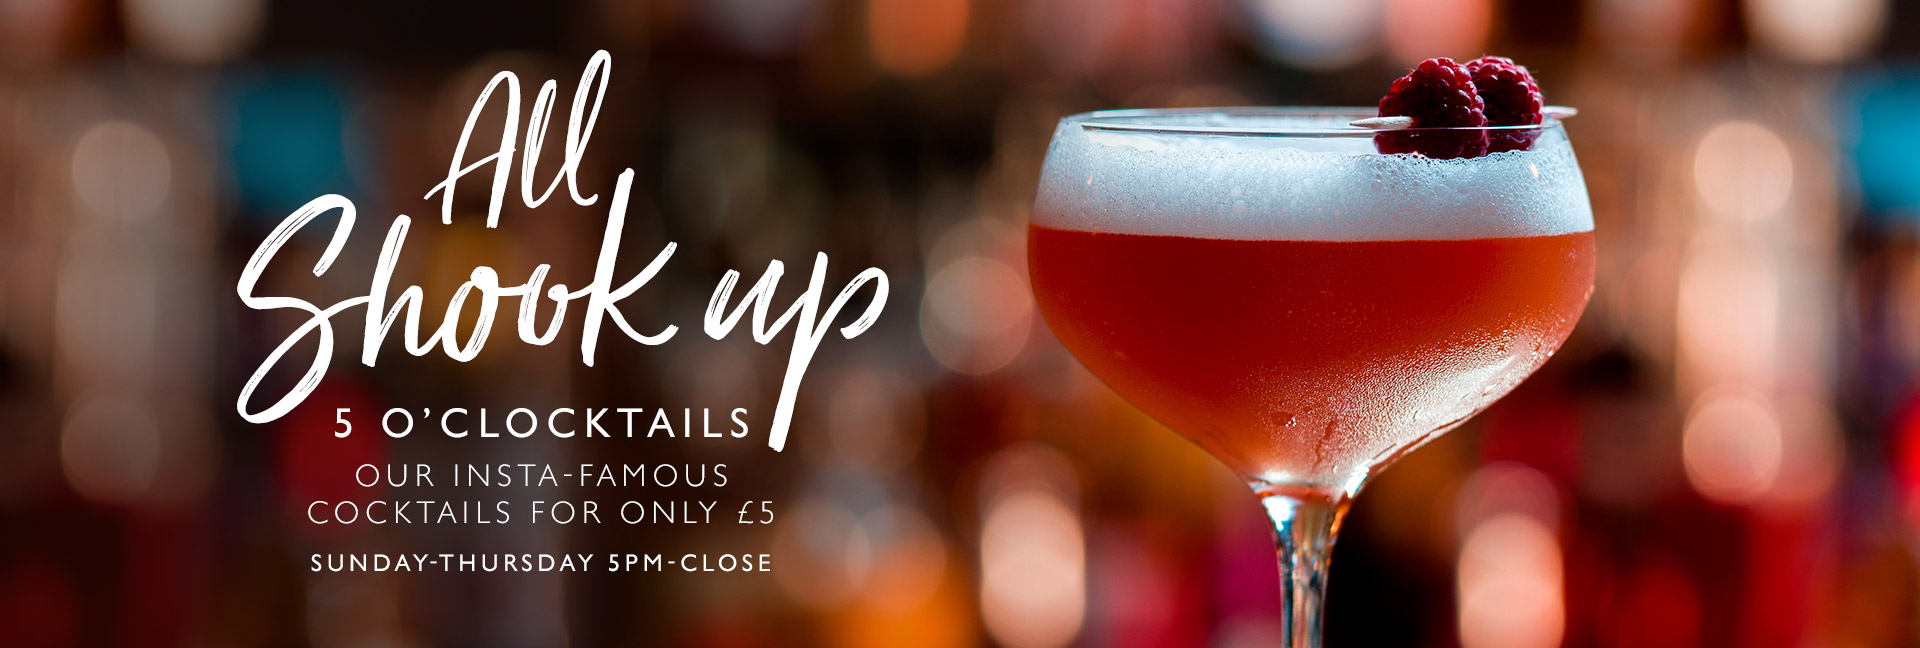 5 O'clocktails at All Bar One Worcester - Book now